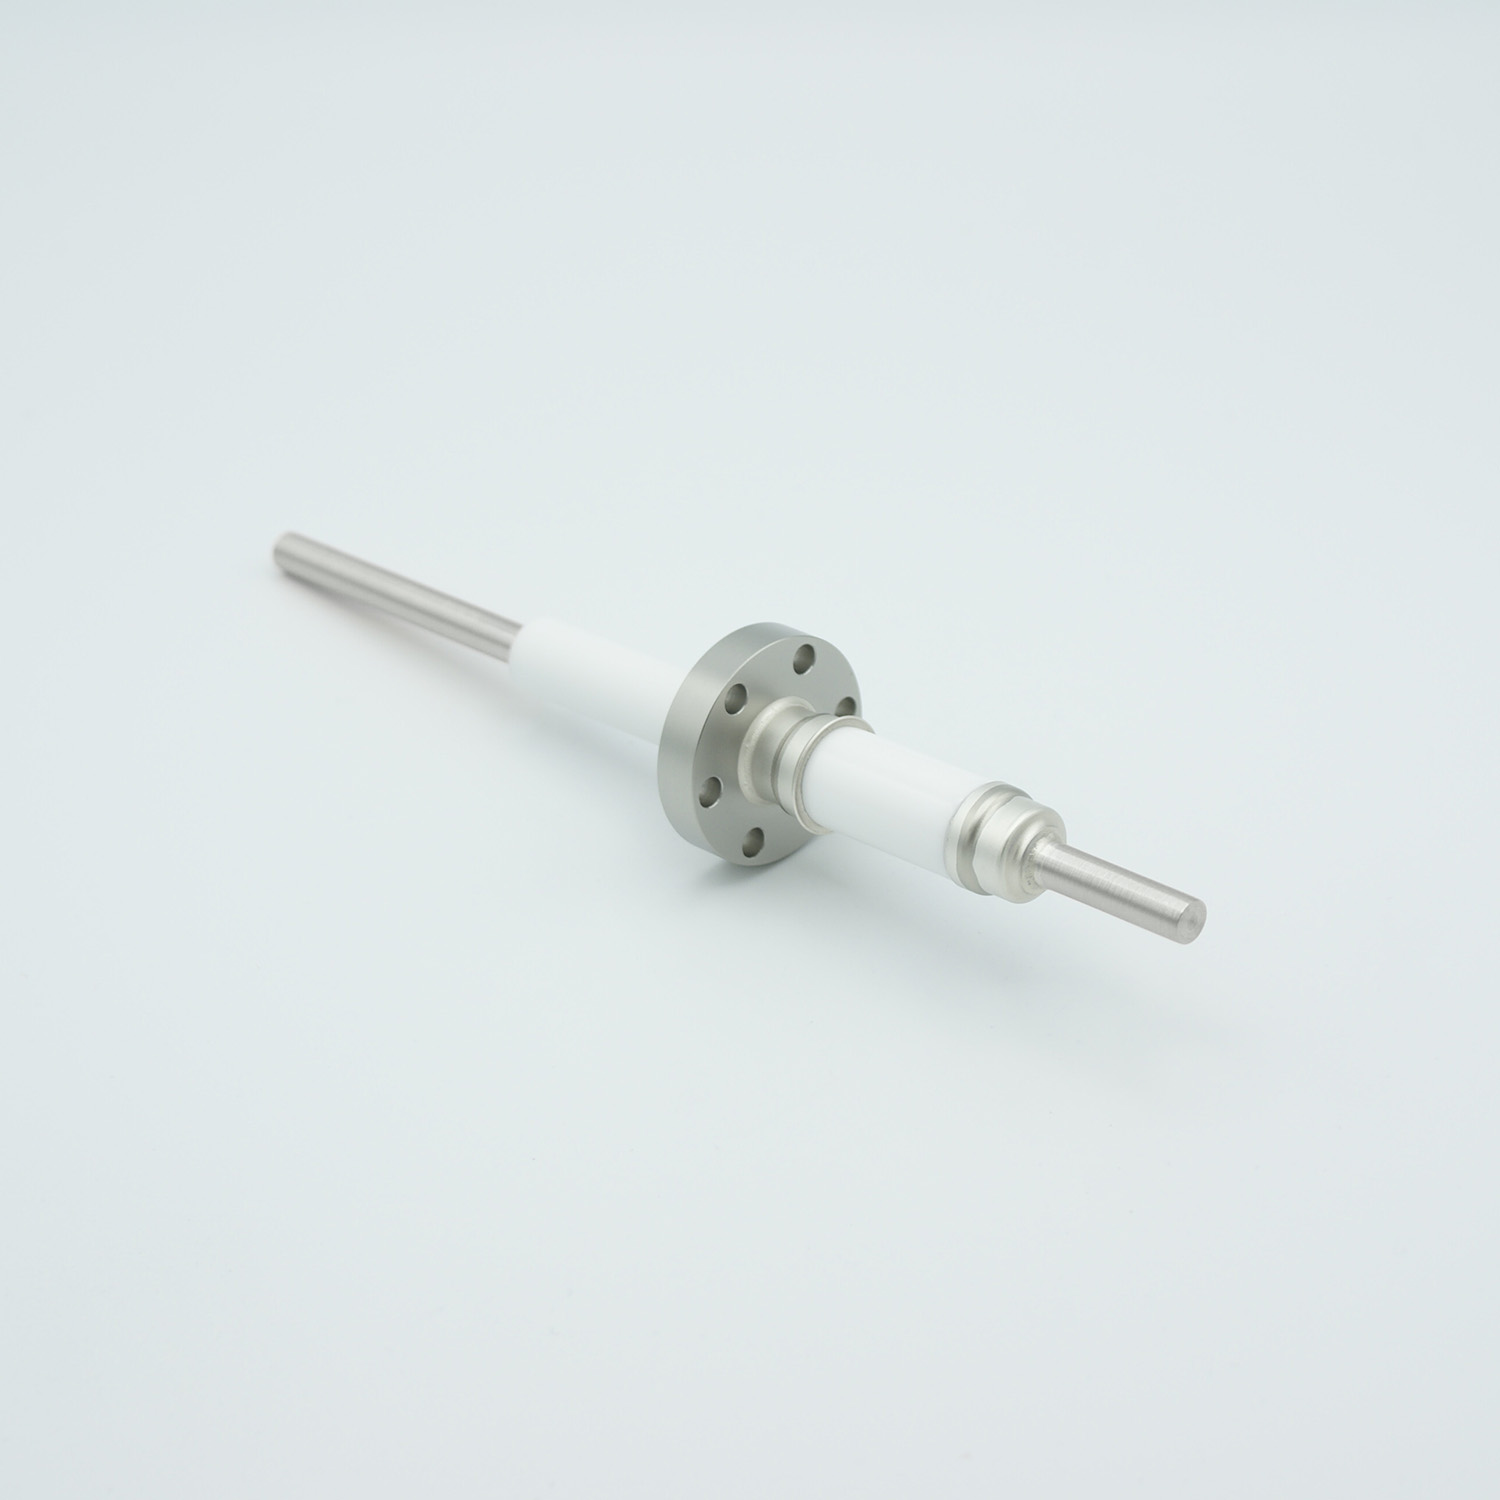 1 pin high voltage feedthrough 12000V / 7 Amp. Stainless steel conductor, DN19CF flange